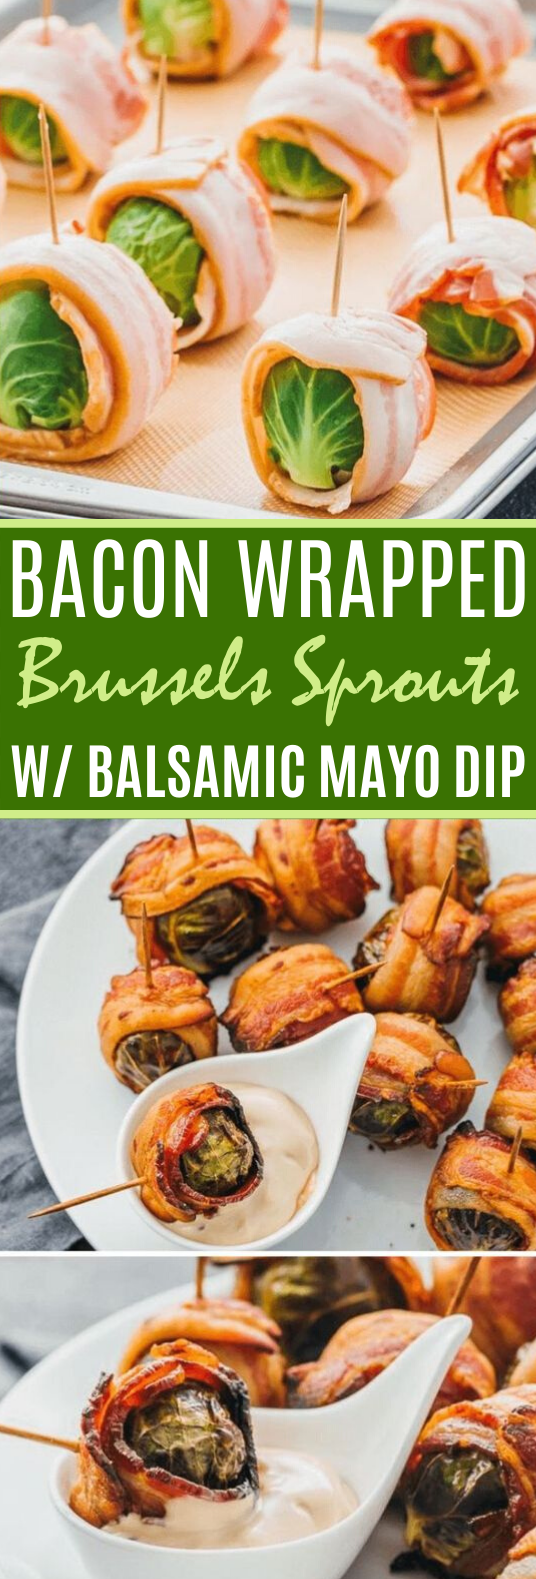 Bacon Wrapped Brussels Sprouts with Balsamic Mayo Dip #healthy #keto #appetizers #lowcarb #diet